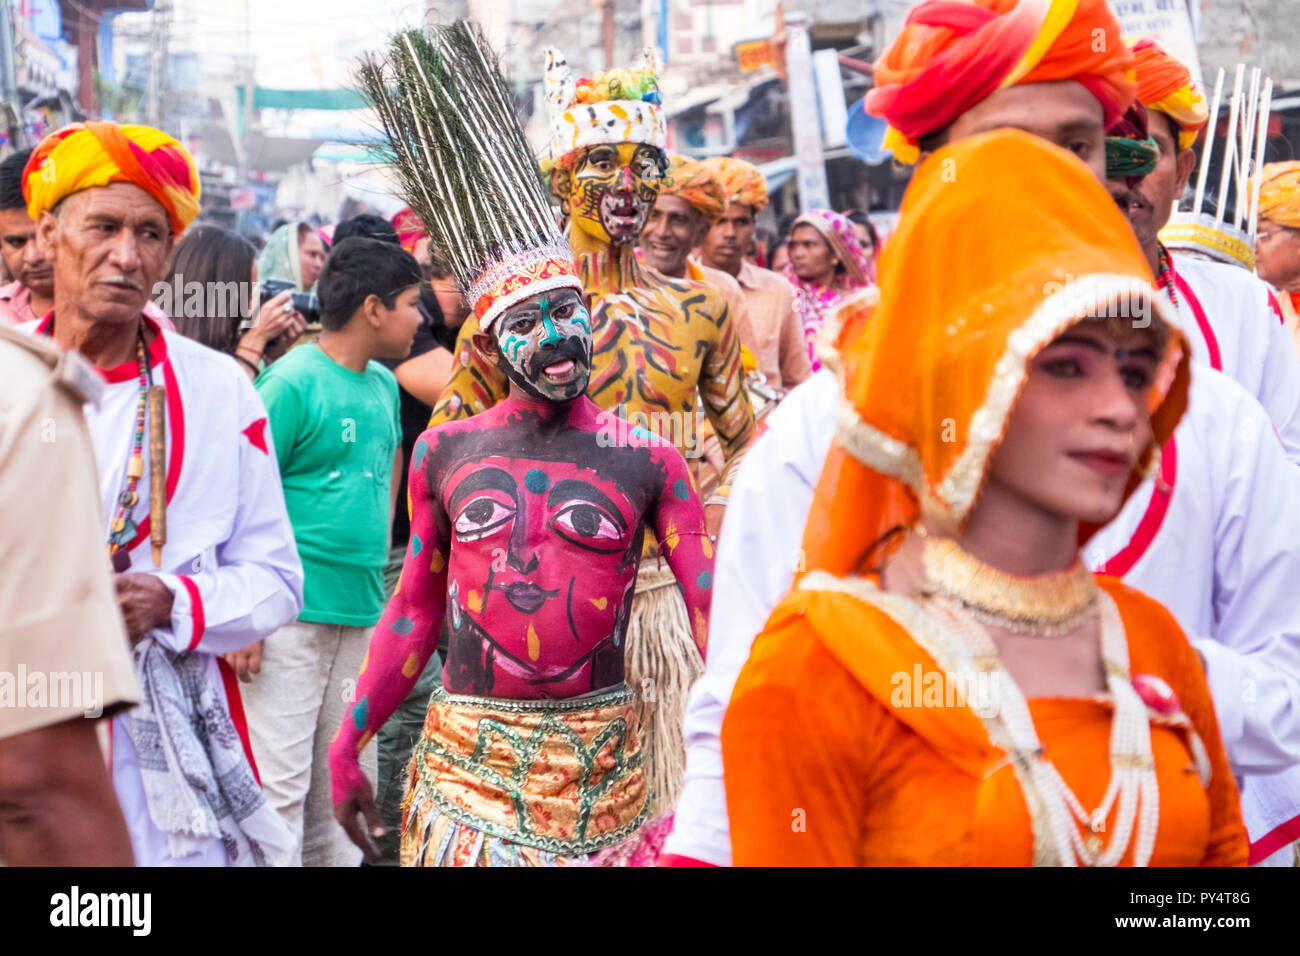 Colourful body-painted characters in a parade in Rajasthan India - Stock Image